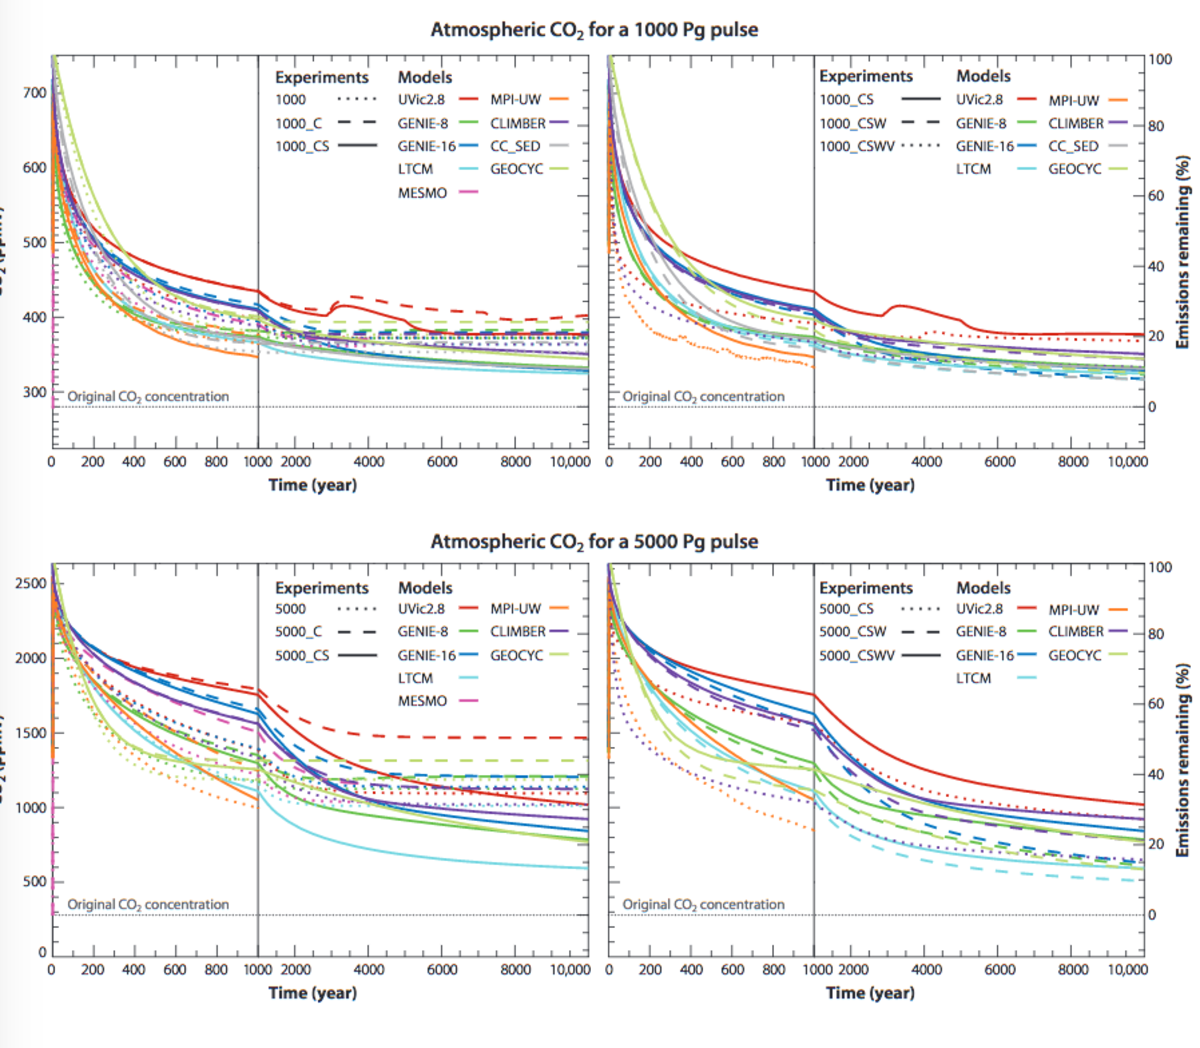 Graphs of modeled CO2 removal from the atmosphere (10,000 year study period)